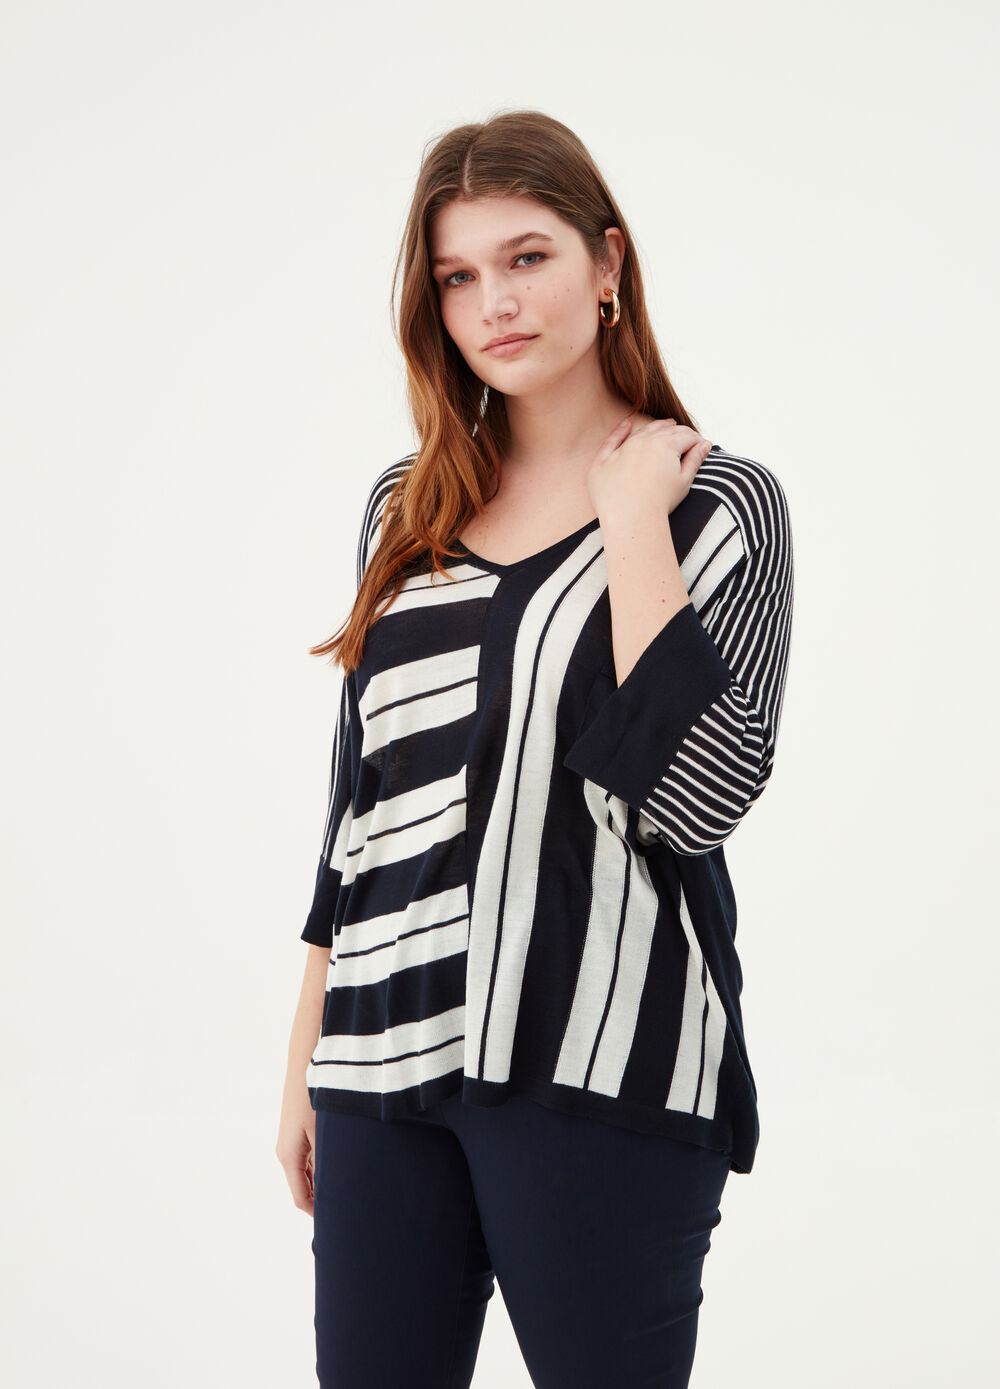 Curvy wide top with geometric pattern